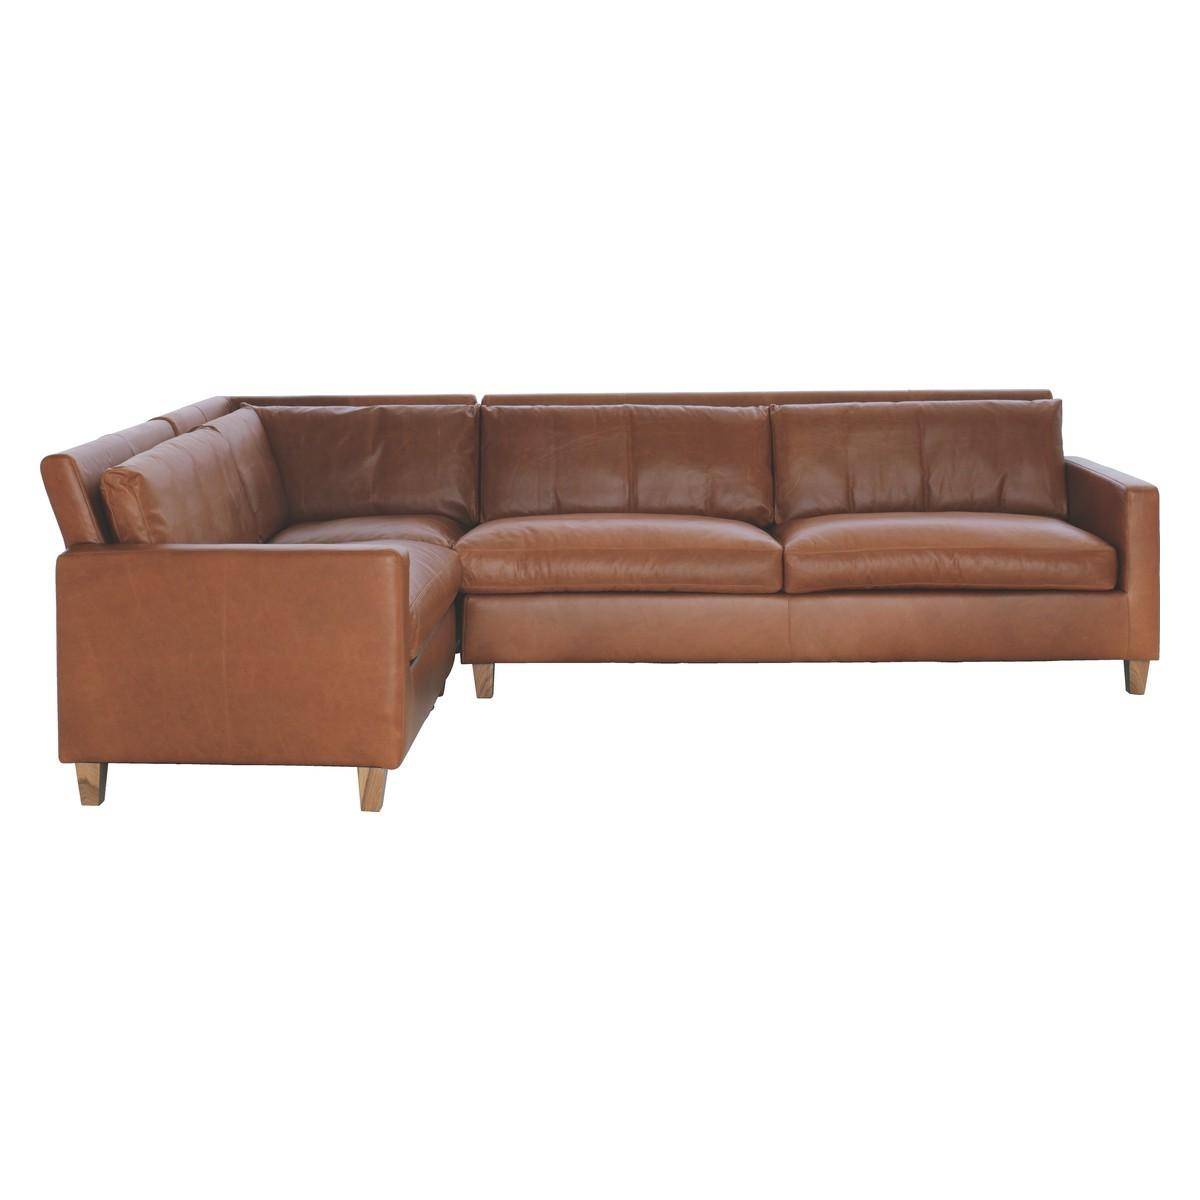 Chester Mid Tan Leather Right Arm Corner Sofa, Oak Stained Feet Regarding Corner Sofa Leather (Image 3 of 20)